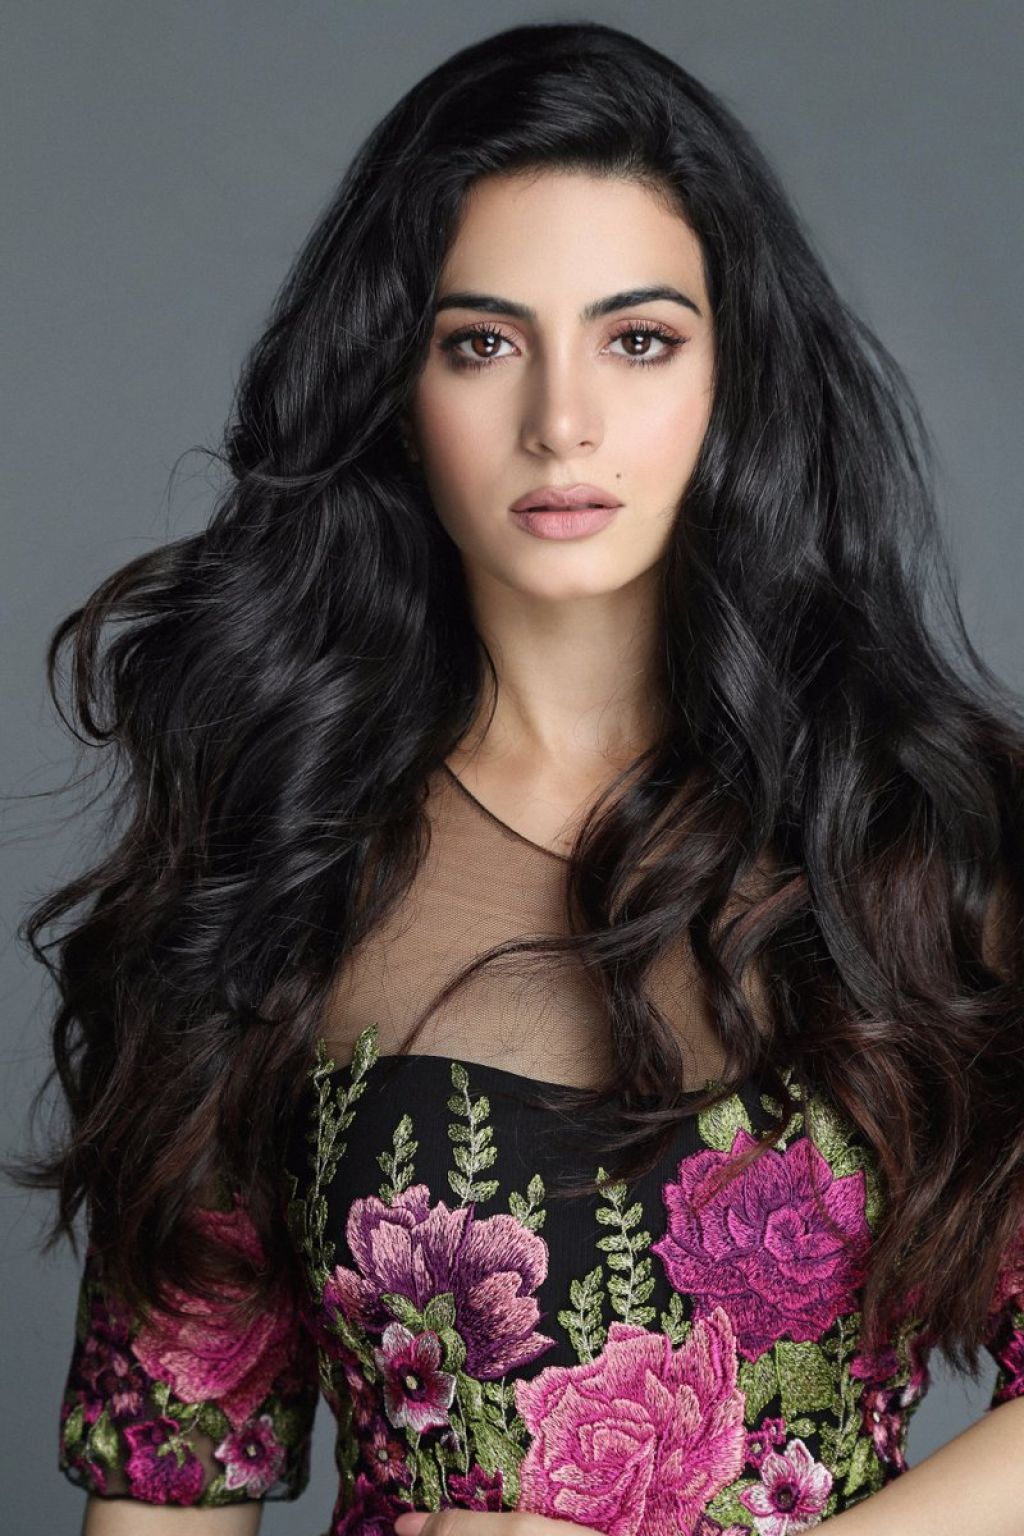 Photos Emeraude Toubia naked (64 photos), Topless, Hot, Selfie, cleavage 2006